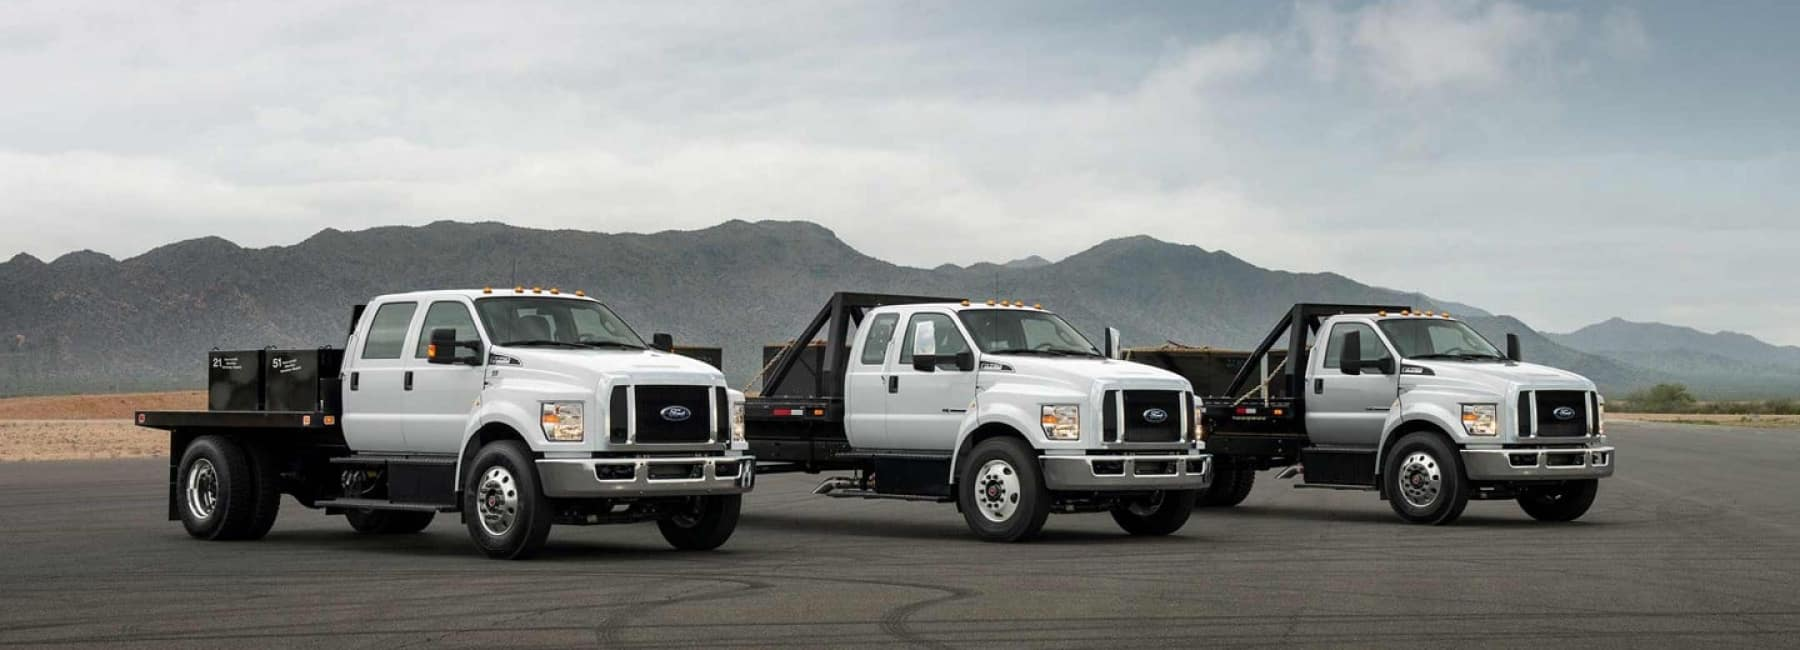 Sutton Ford Commercial & Fleet has a large inventory of medium duty trucks in Matteson, IL